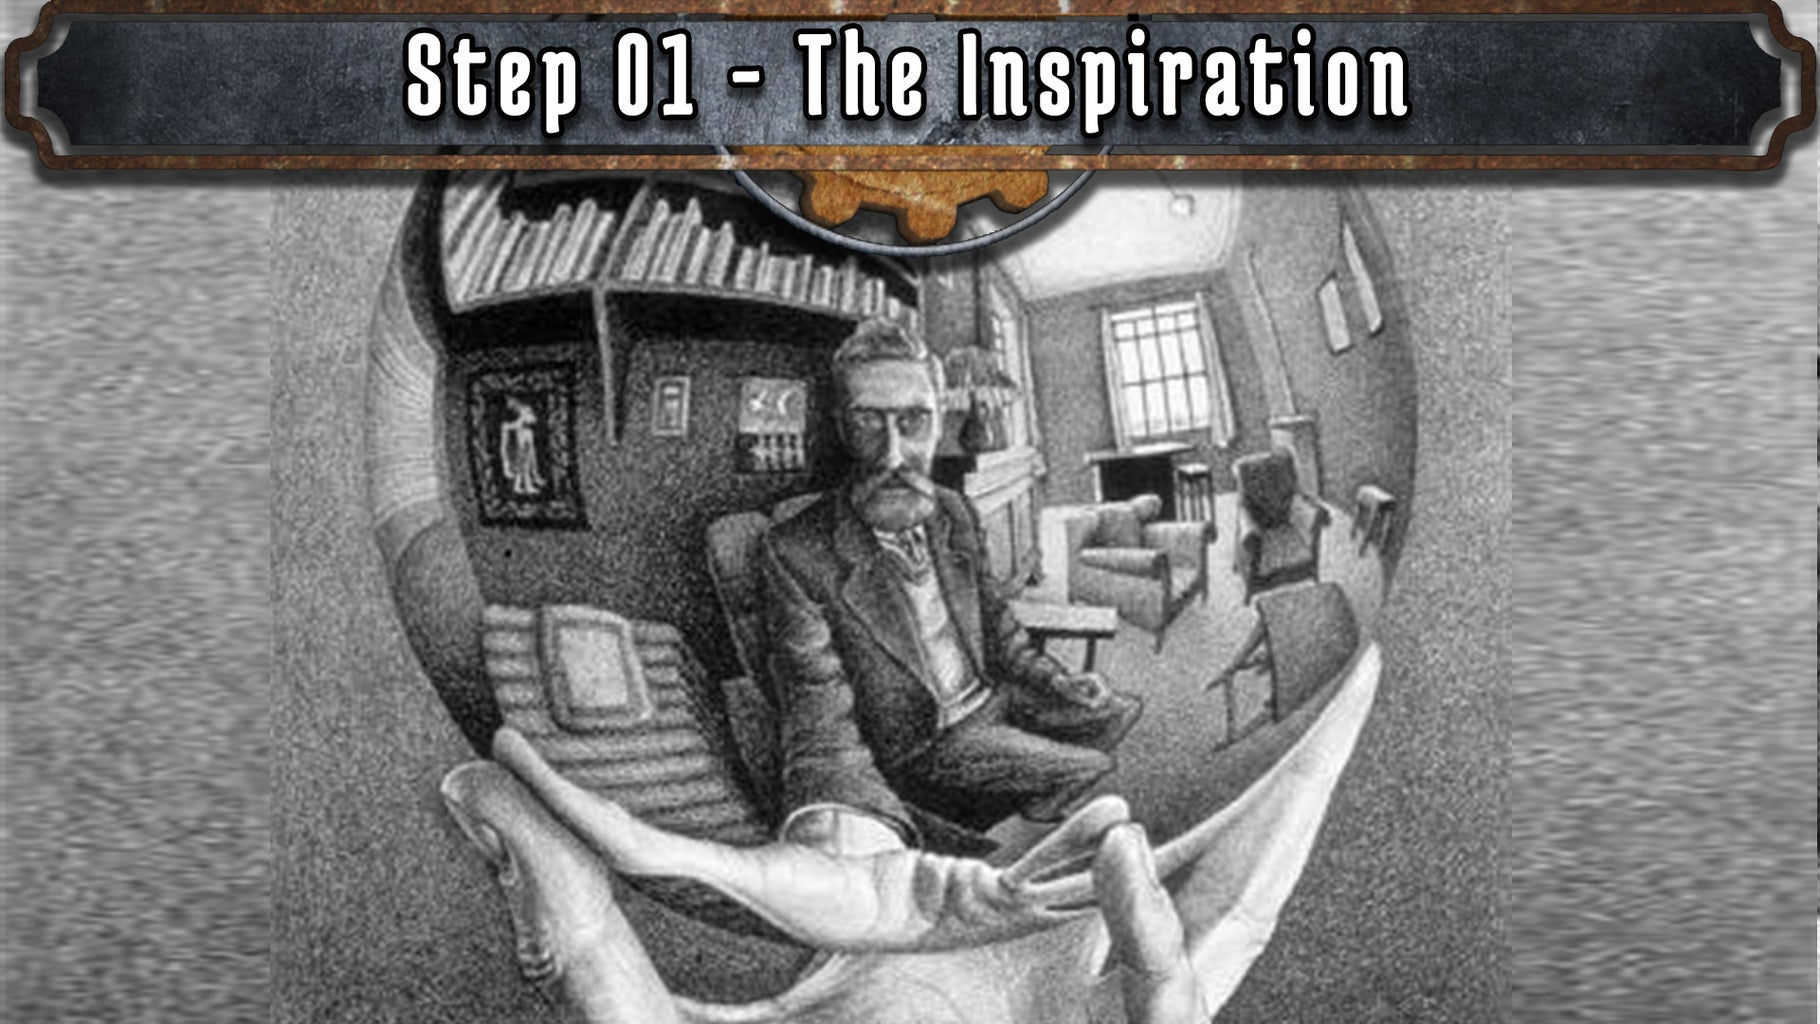 The Inspiration